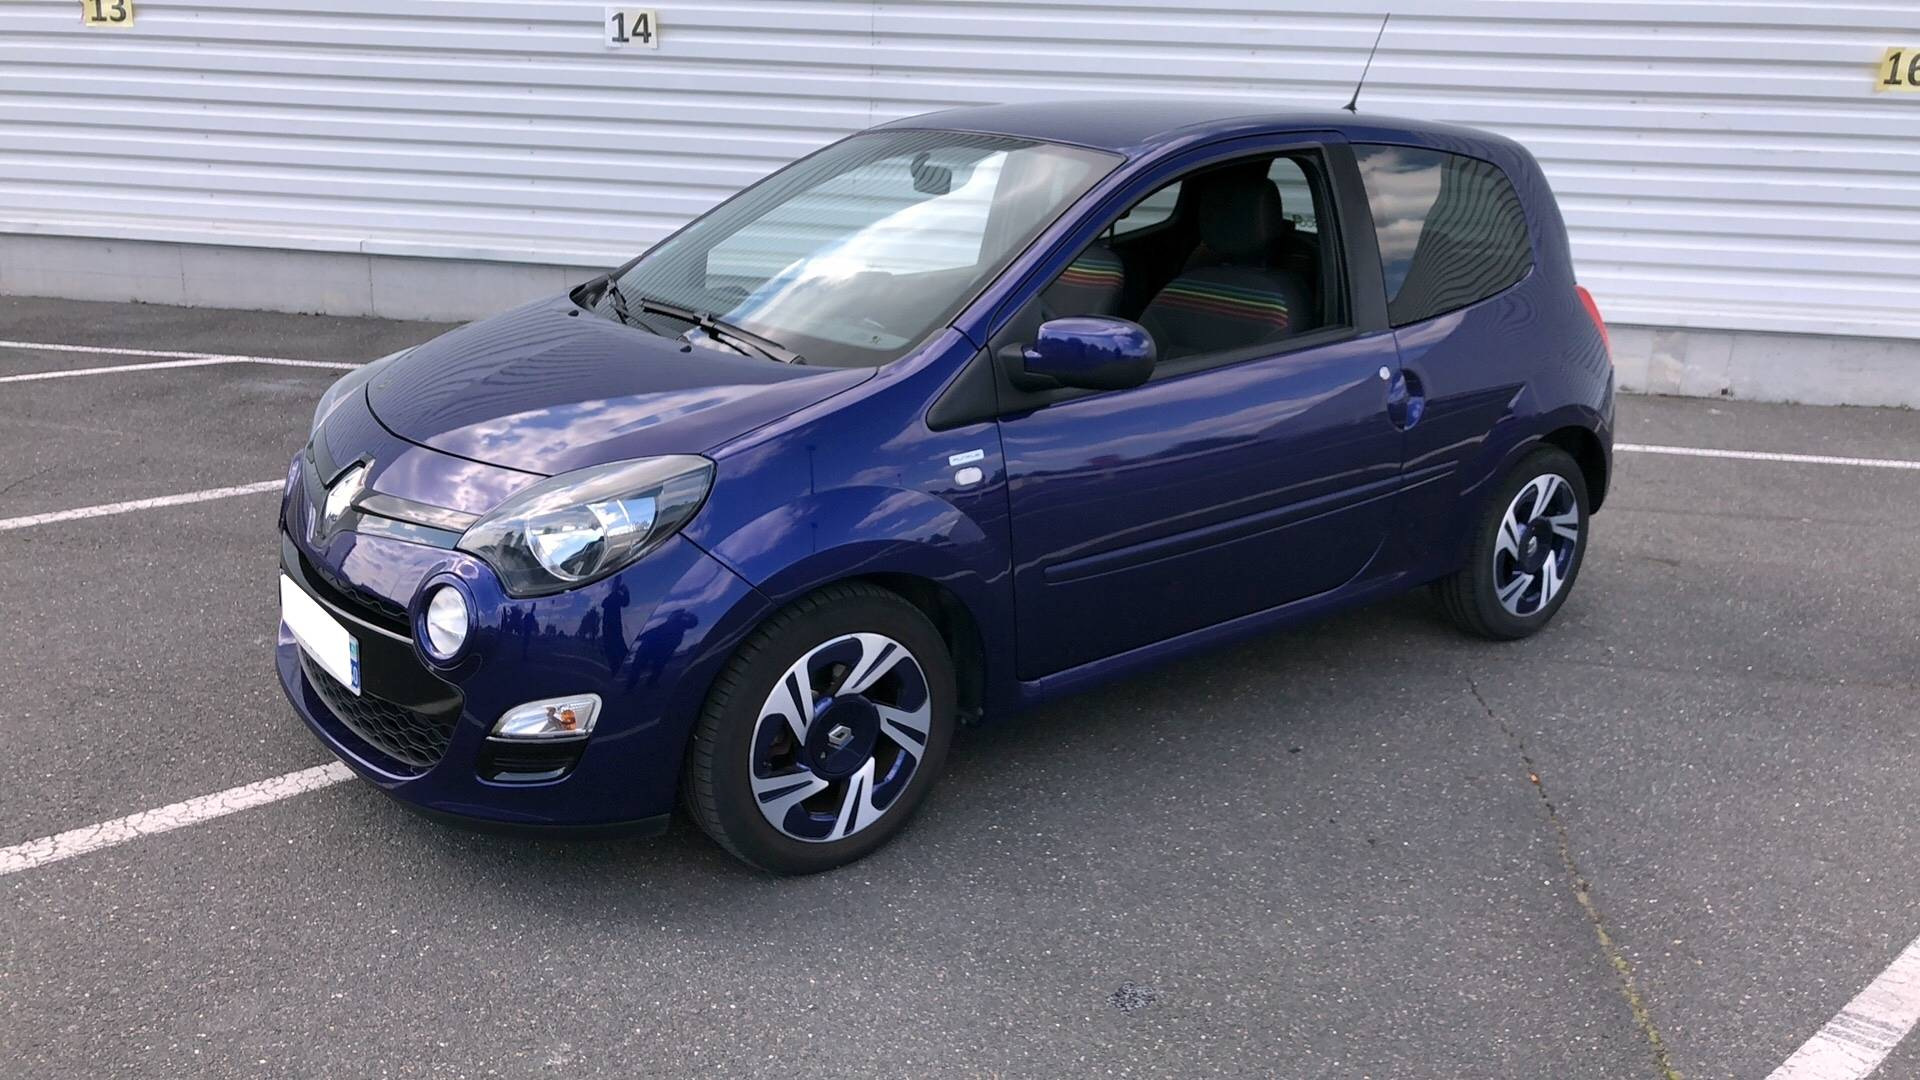 renault twingo d u0026 39 occasion 1 2 lev 75 purple montesson